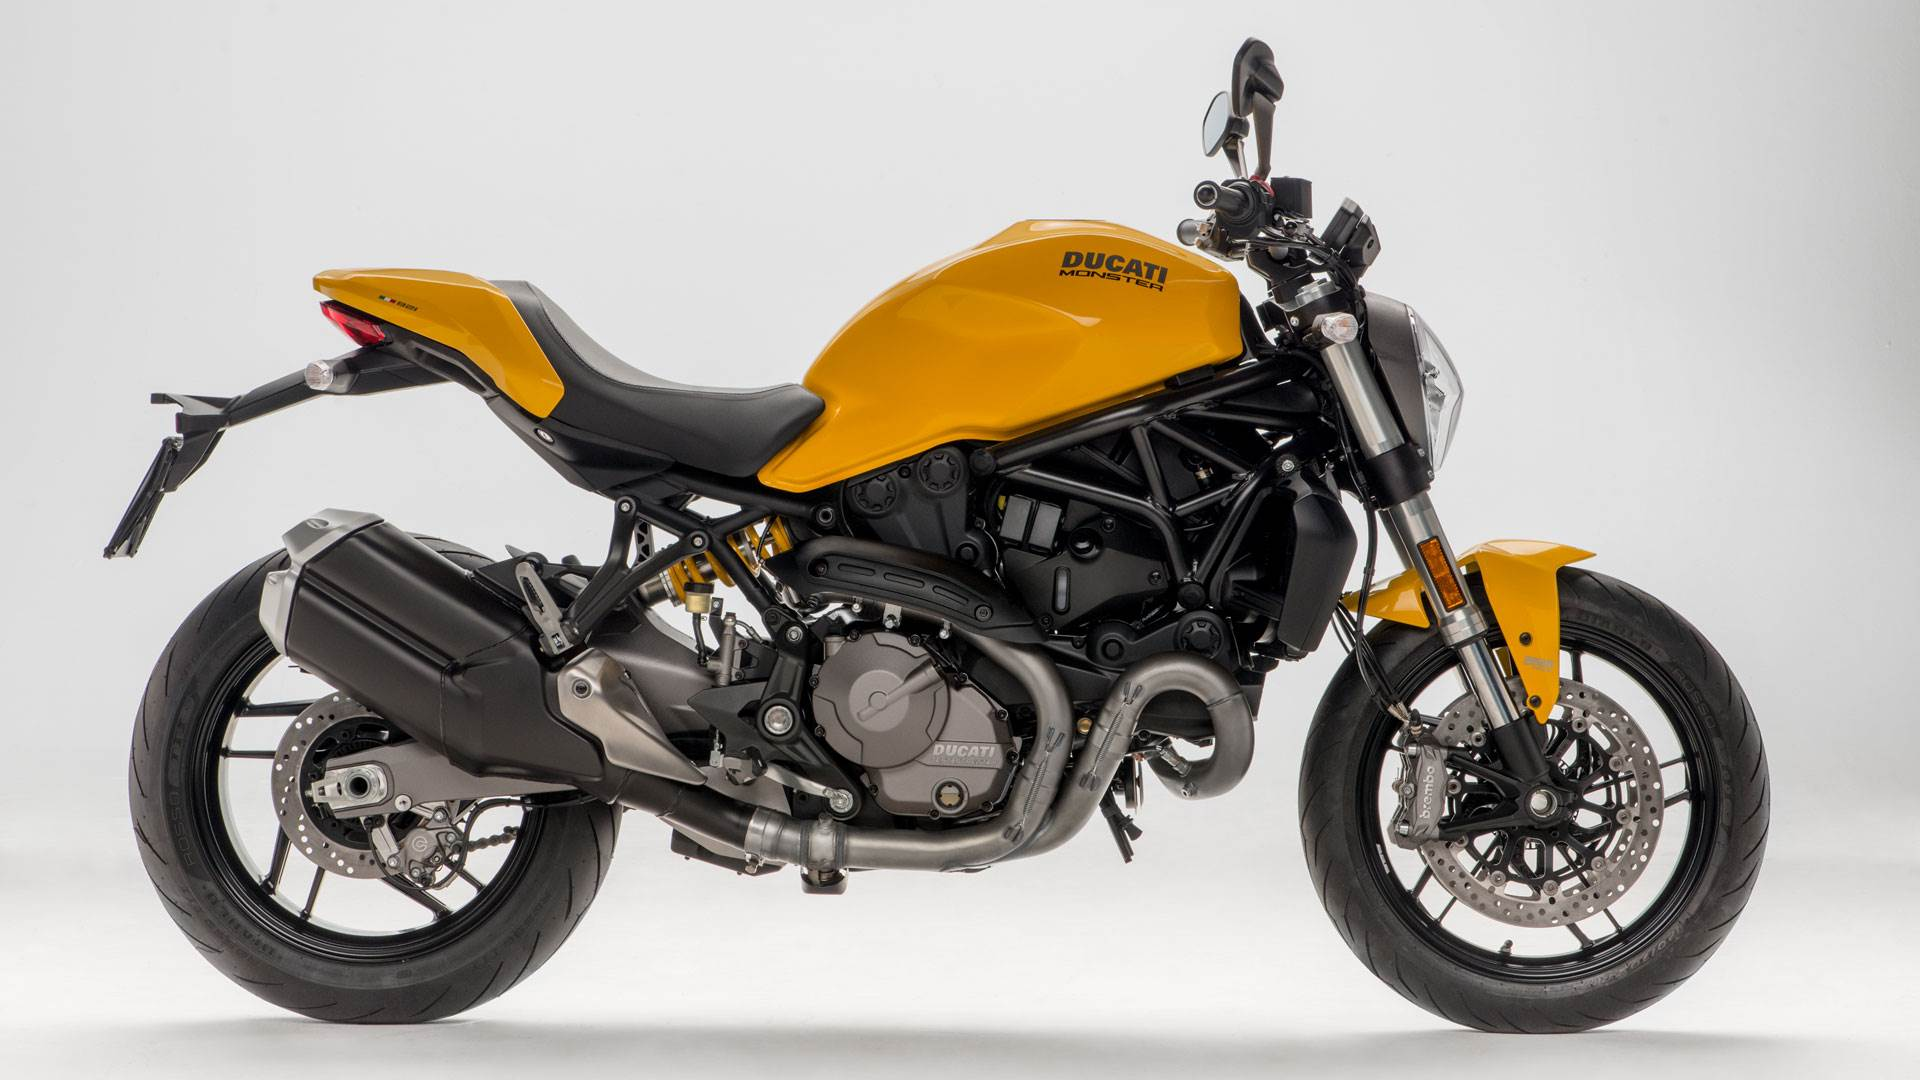 2018 Ducati Monster 821 To Launch In India On May 1 Autocar India